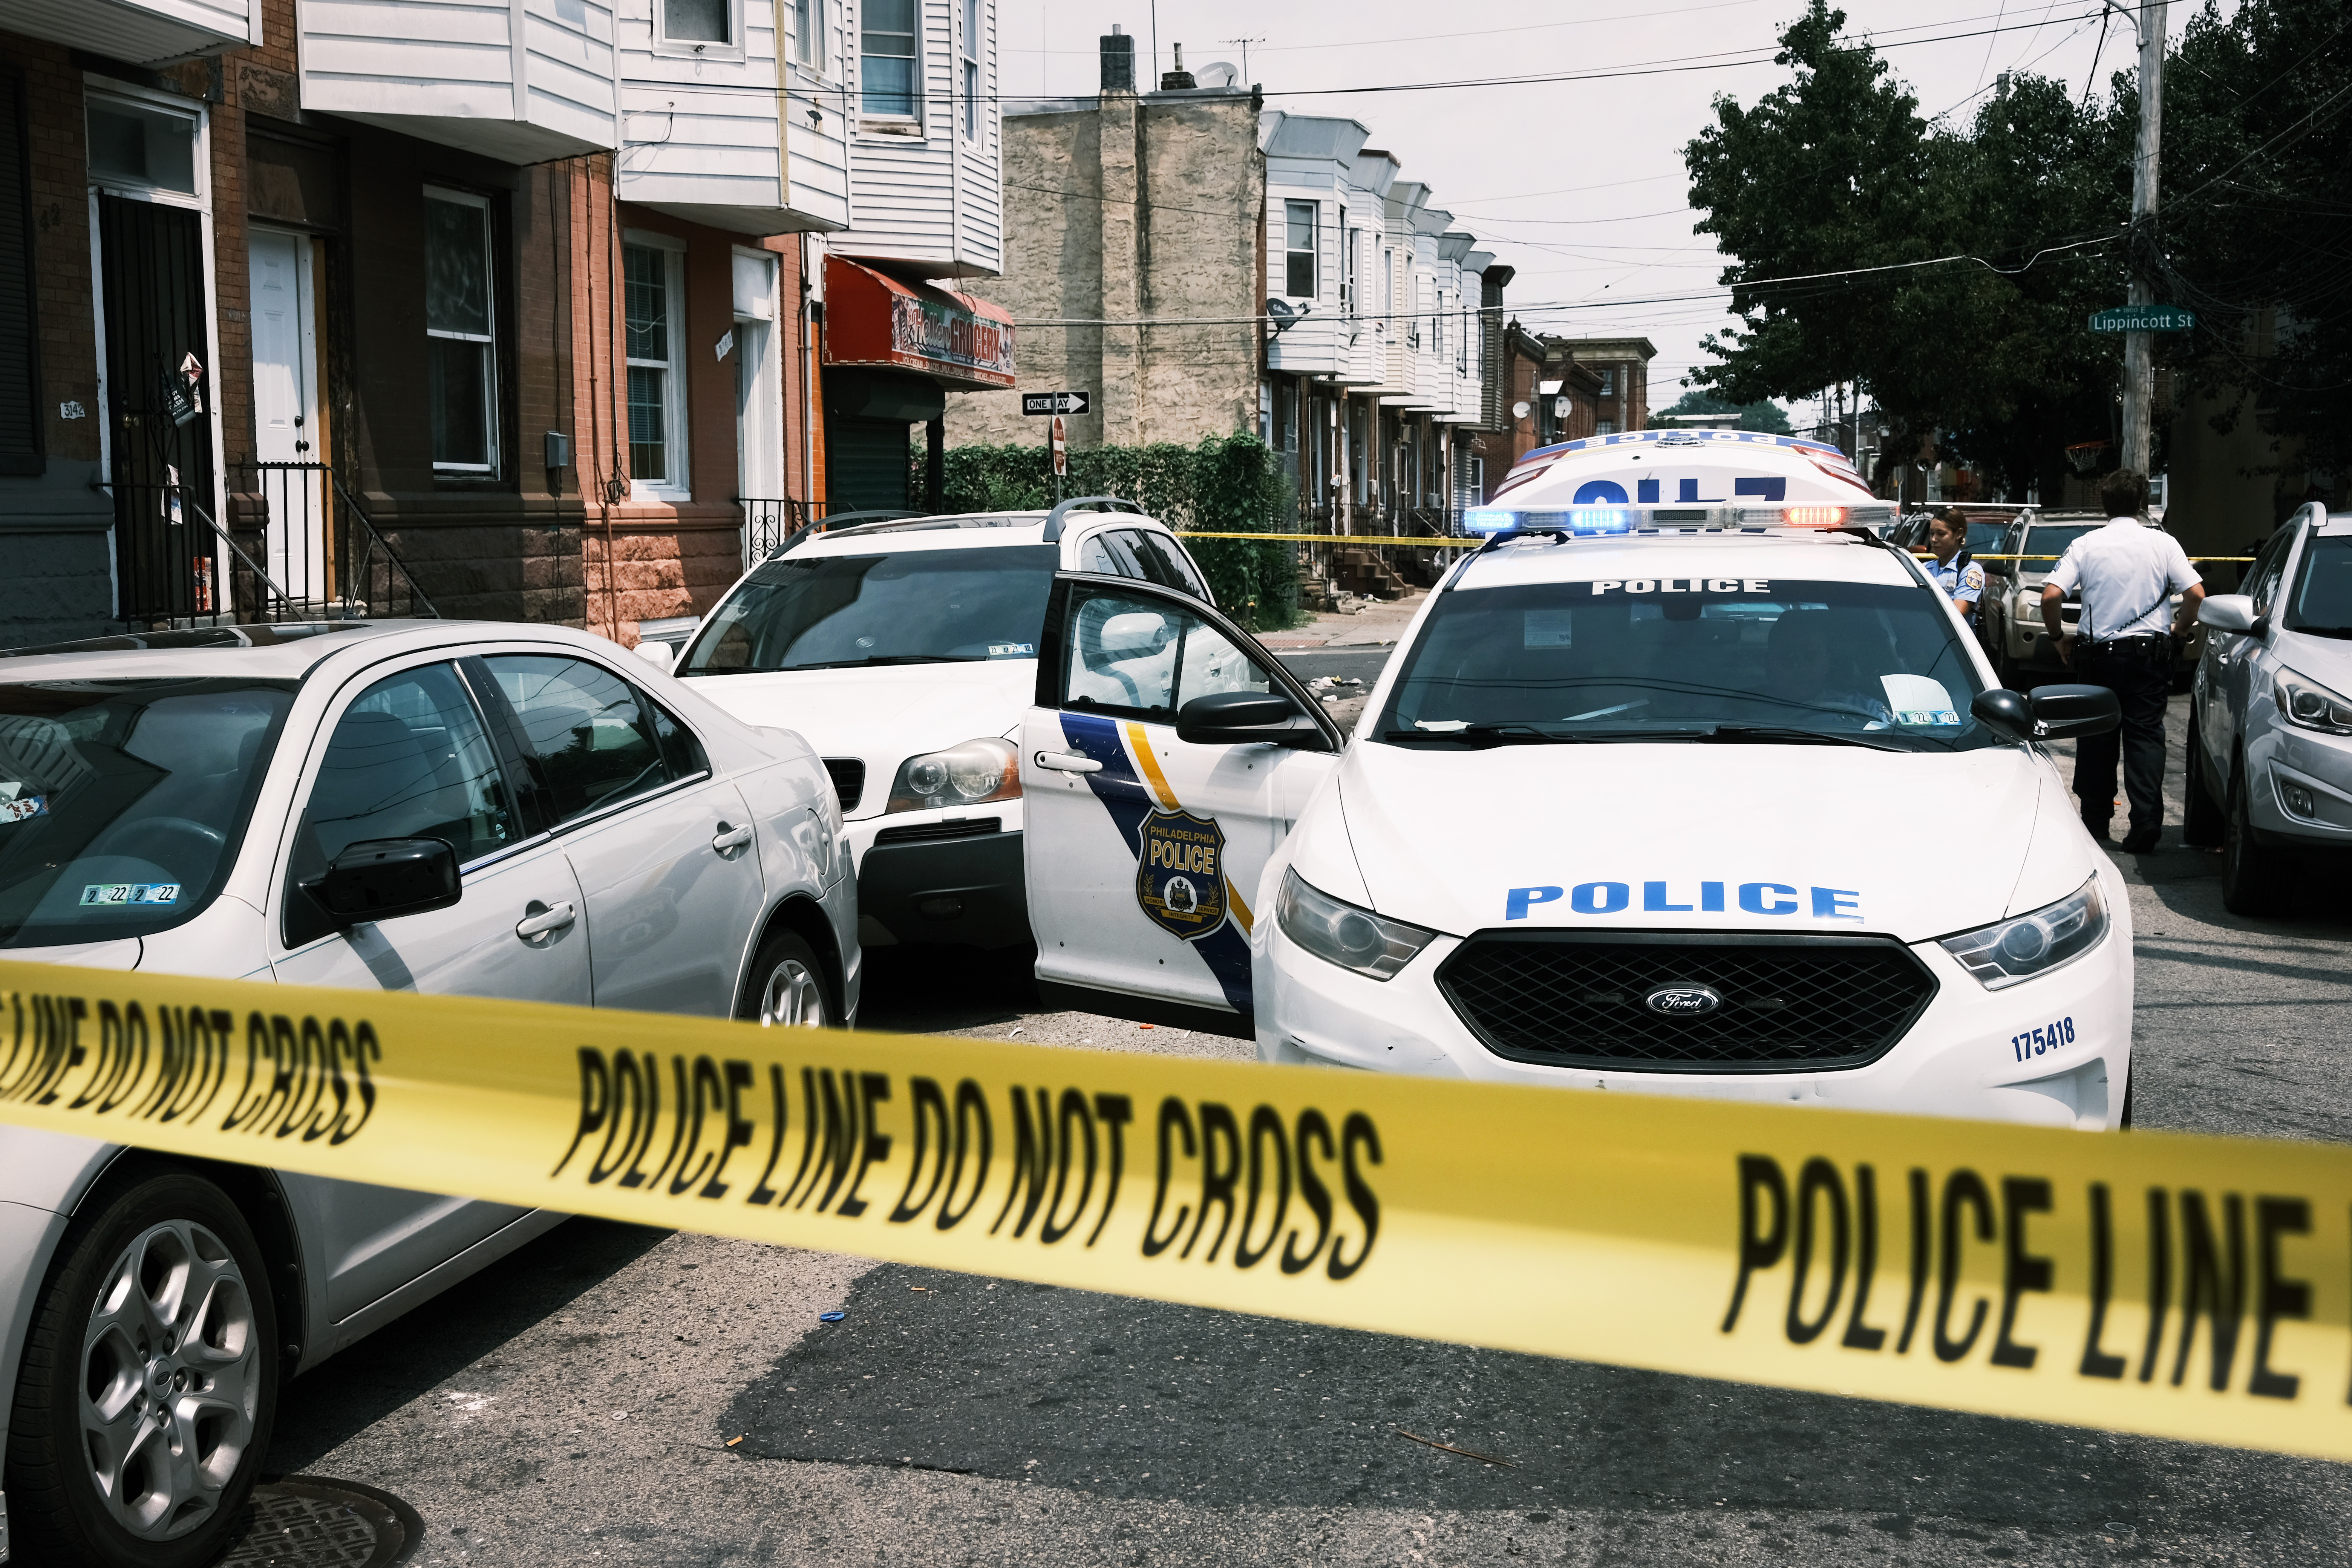 Police tape blocks a street where a person was recently shot in a drug related event in Kensington in Philadelphia, Pennsylvania. (Photo by Spencer Platt/Getty Images)